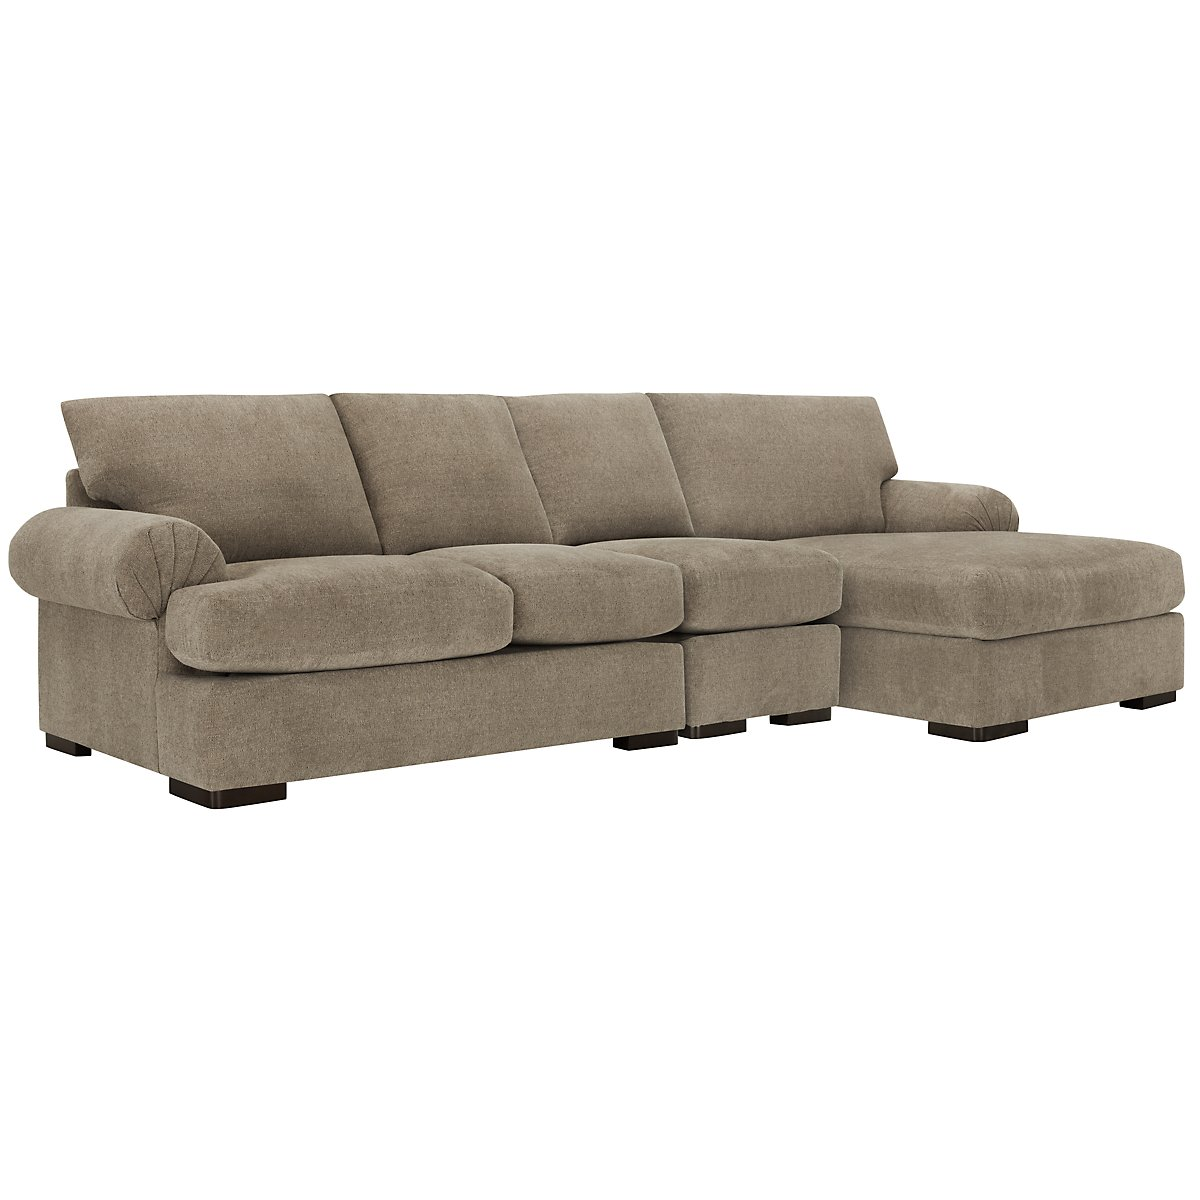 Belair Dark Taupe Fabric Small Right Chaise Sectional